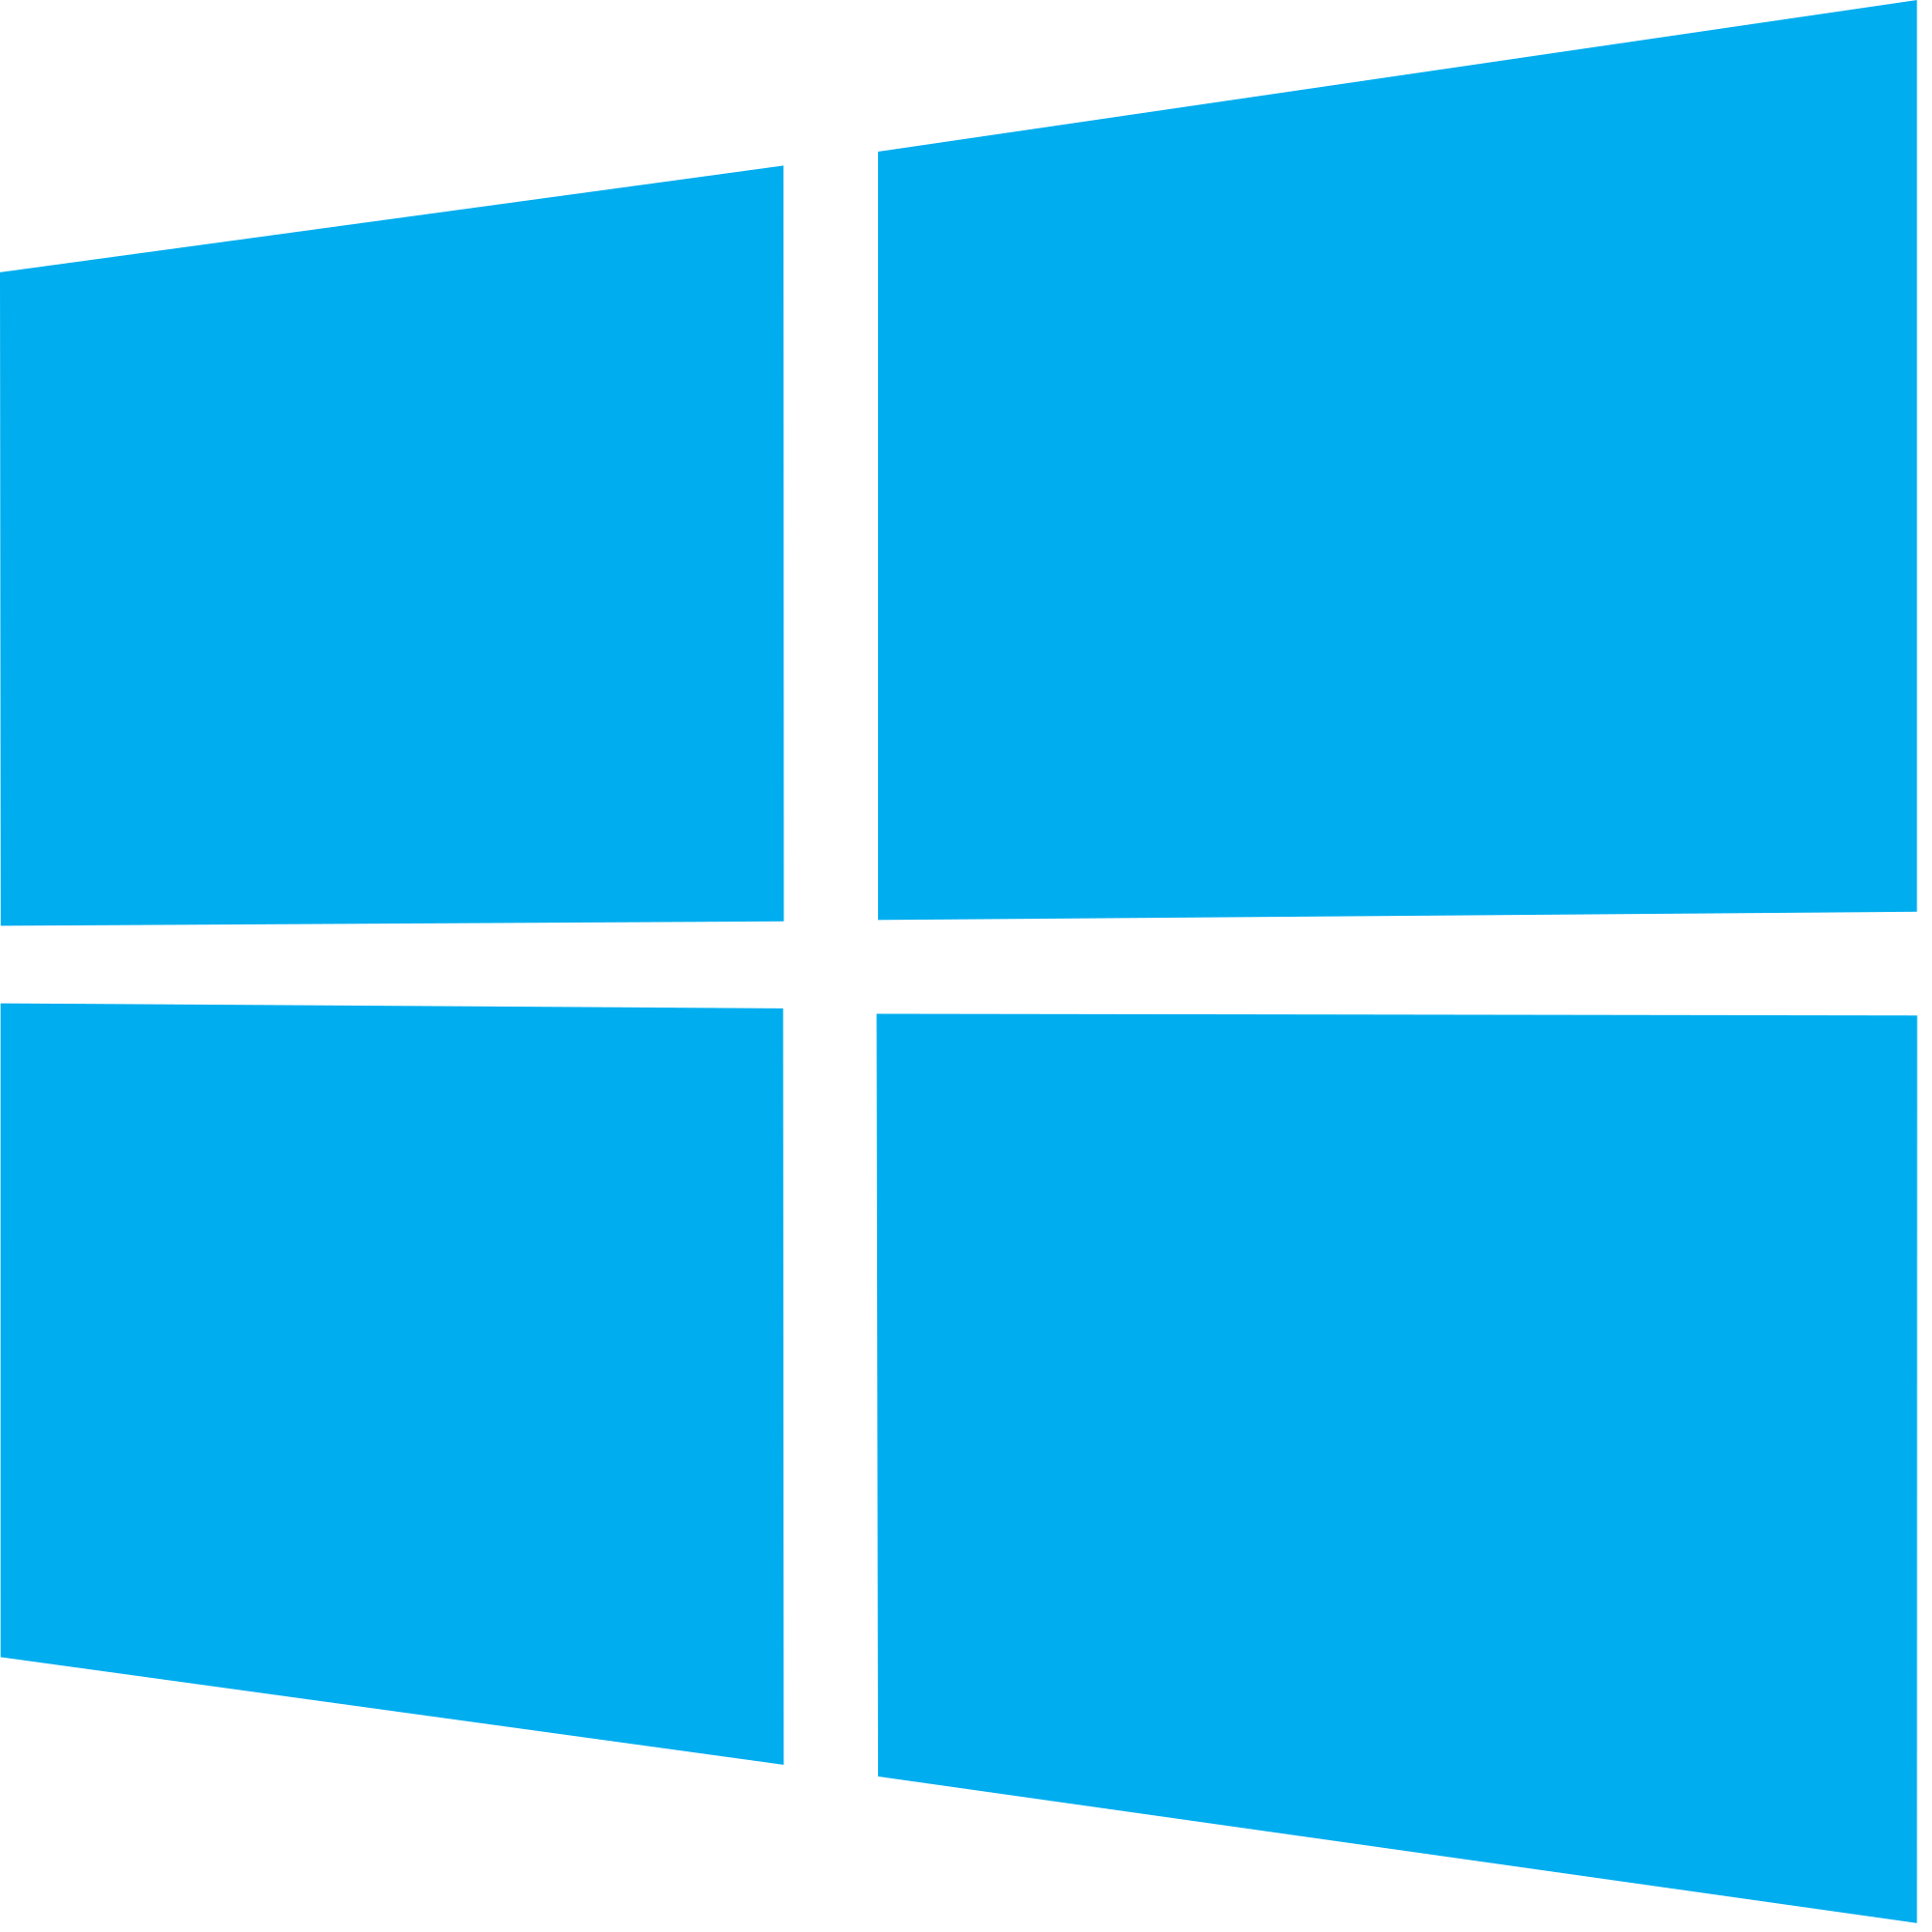 Windows Mobile Operating System Logo